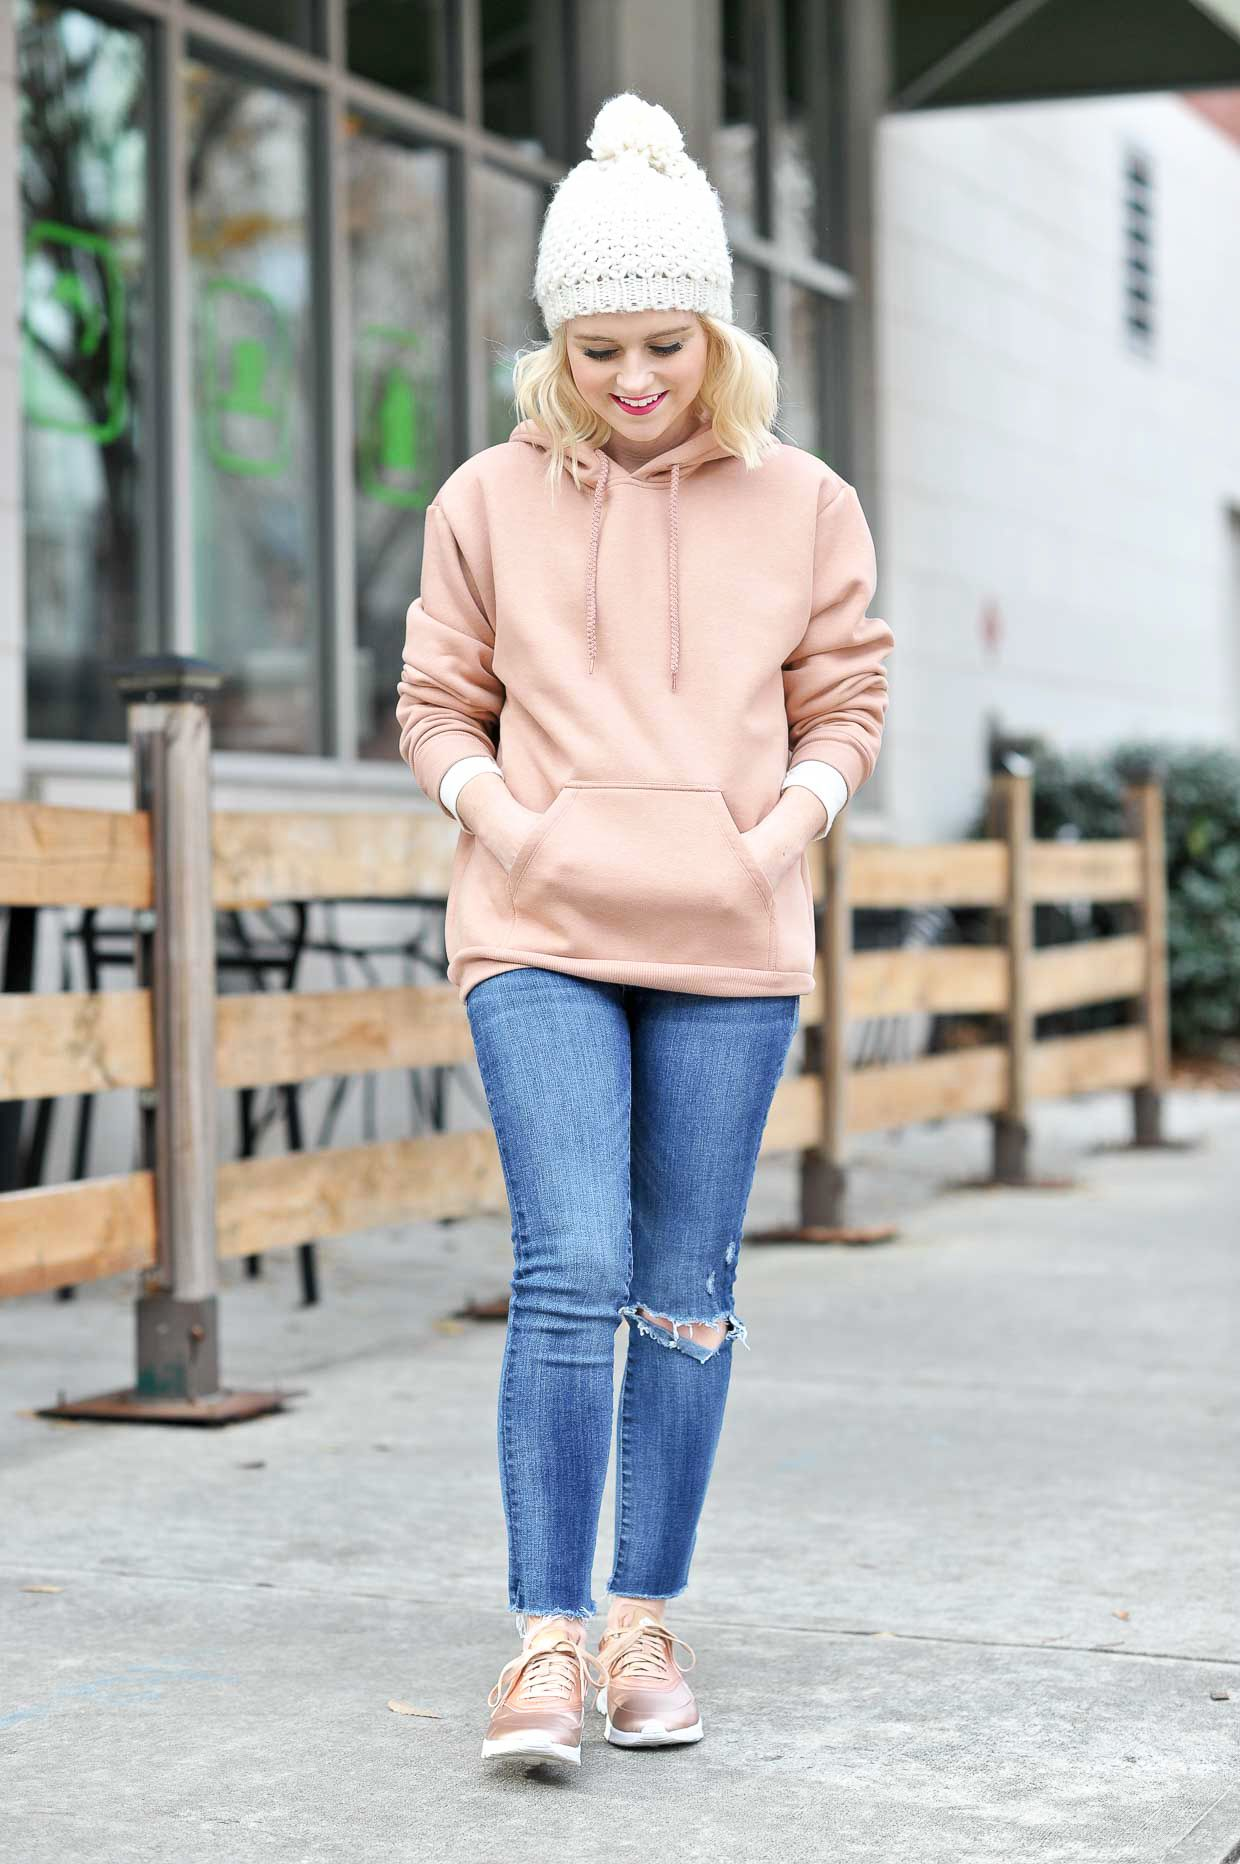 0b087d58d Nike Metallic Air Max Thea Rose Gold Sneakers - Poor Little It Girl. Blush  hoodie+ripped jeans+rose gold sneakers+white pom-pom knit beanie.